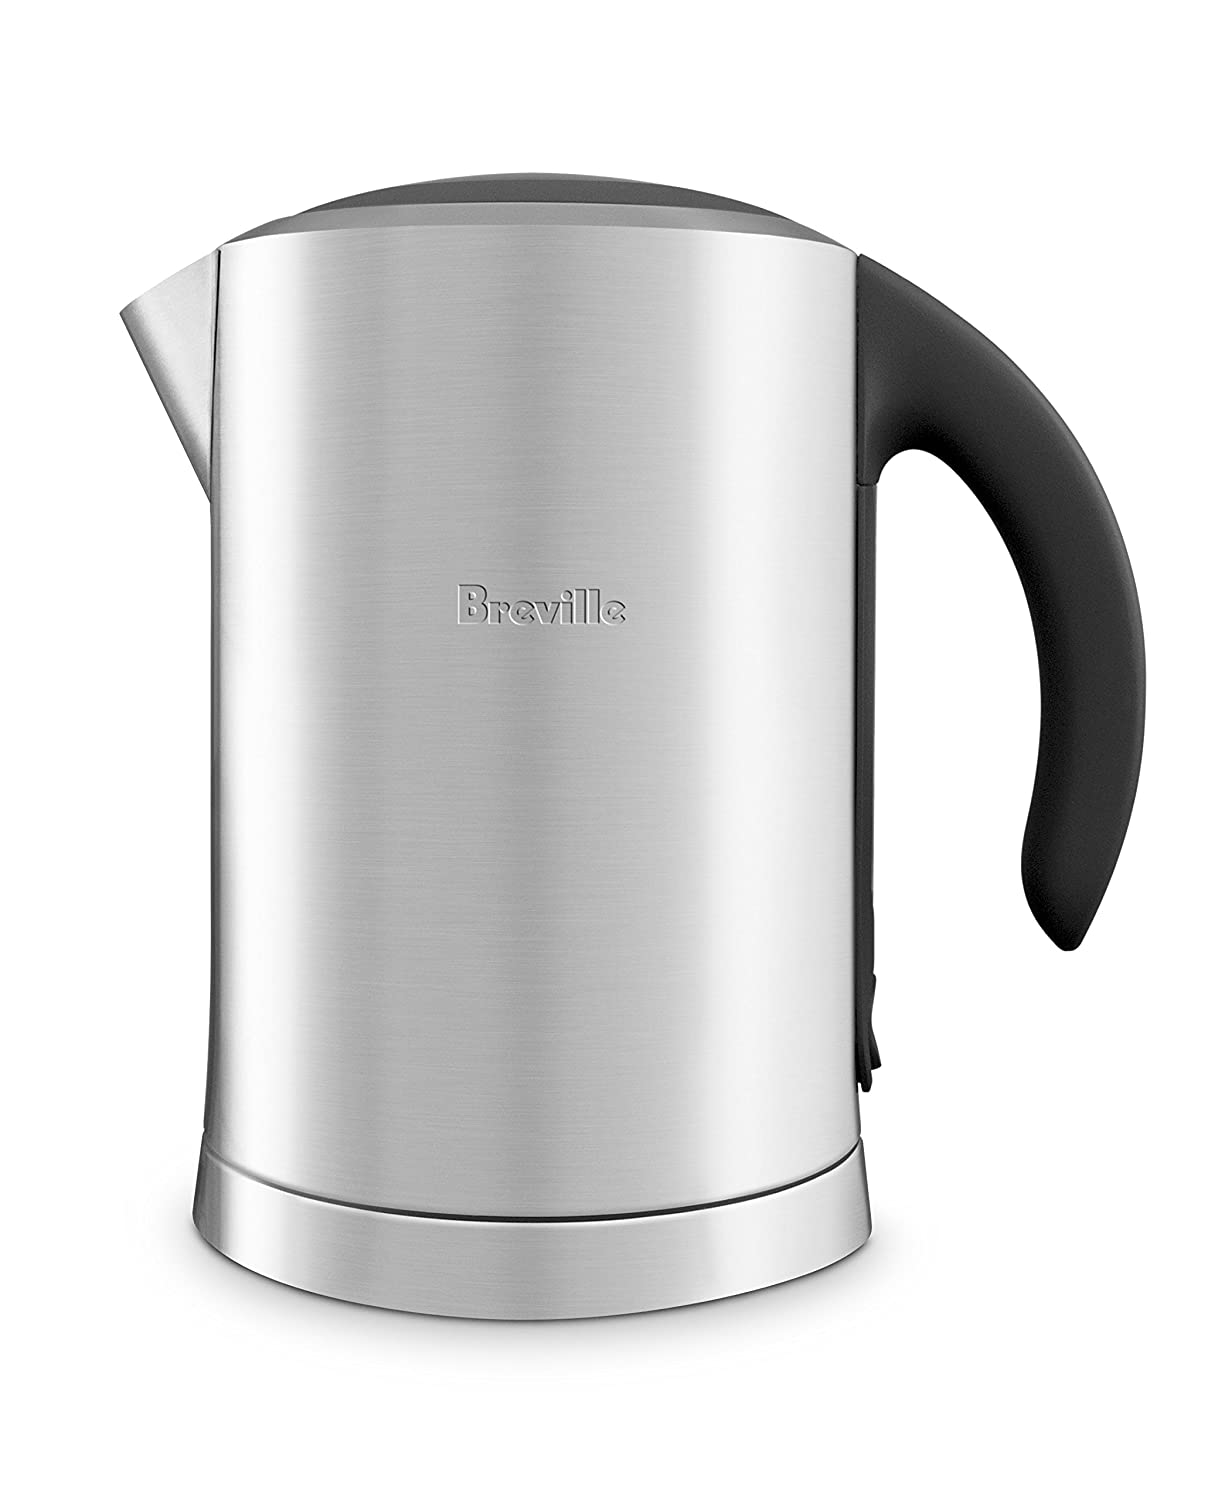 Great Breville SK500XL Ikon Cordless 1.7-Liter Stainless-Steel Electric Kettle